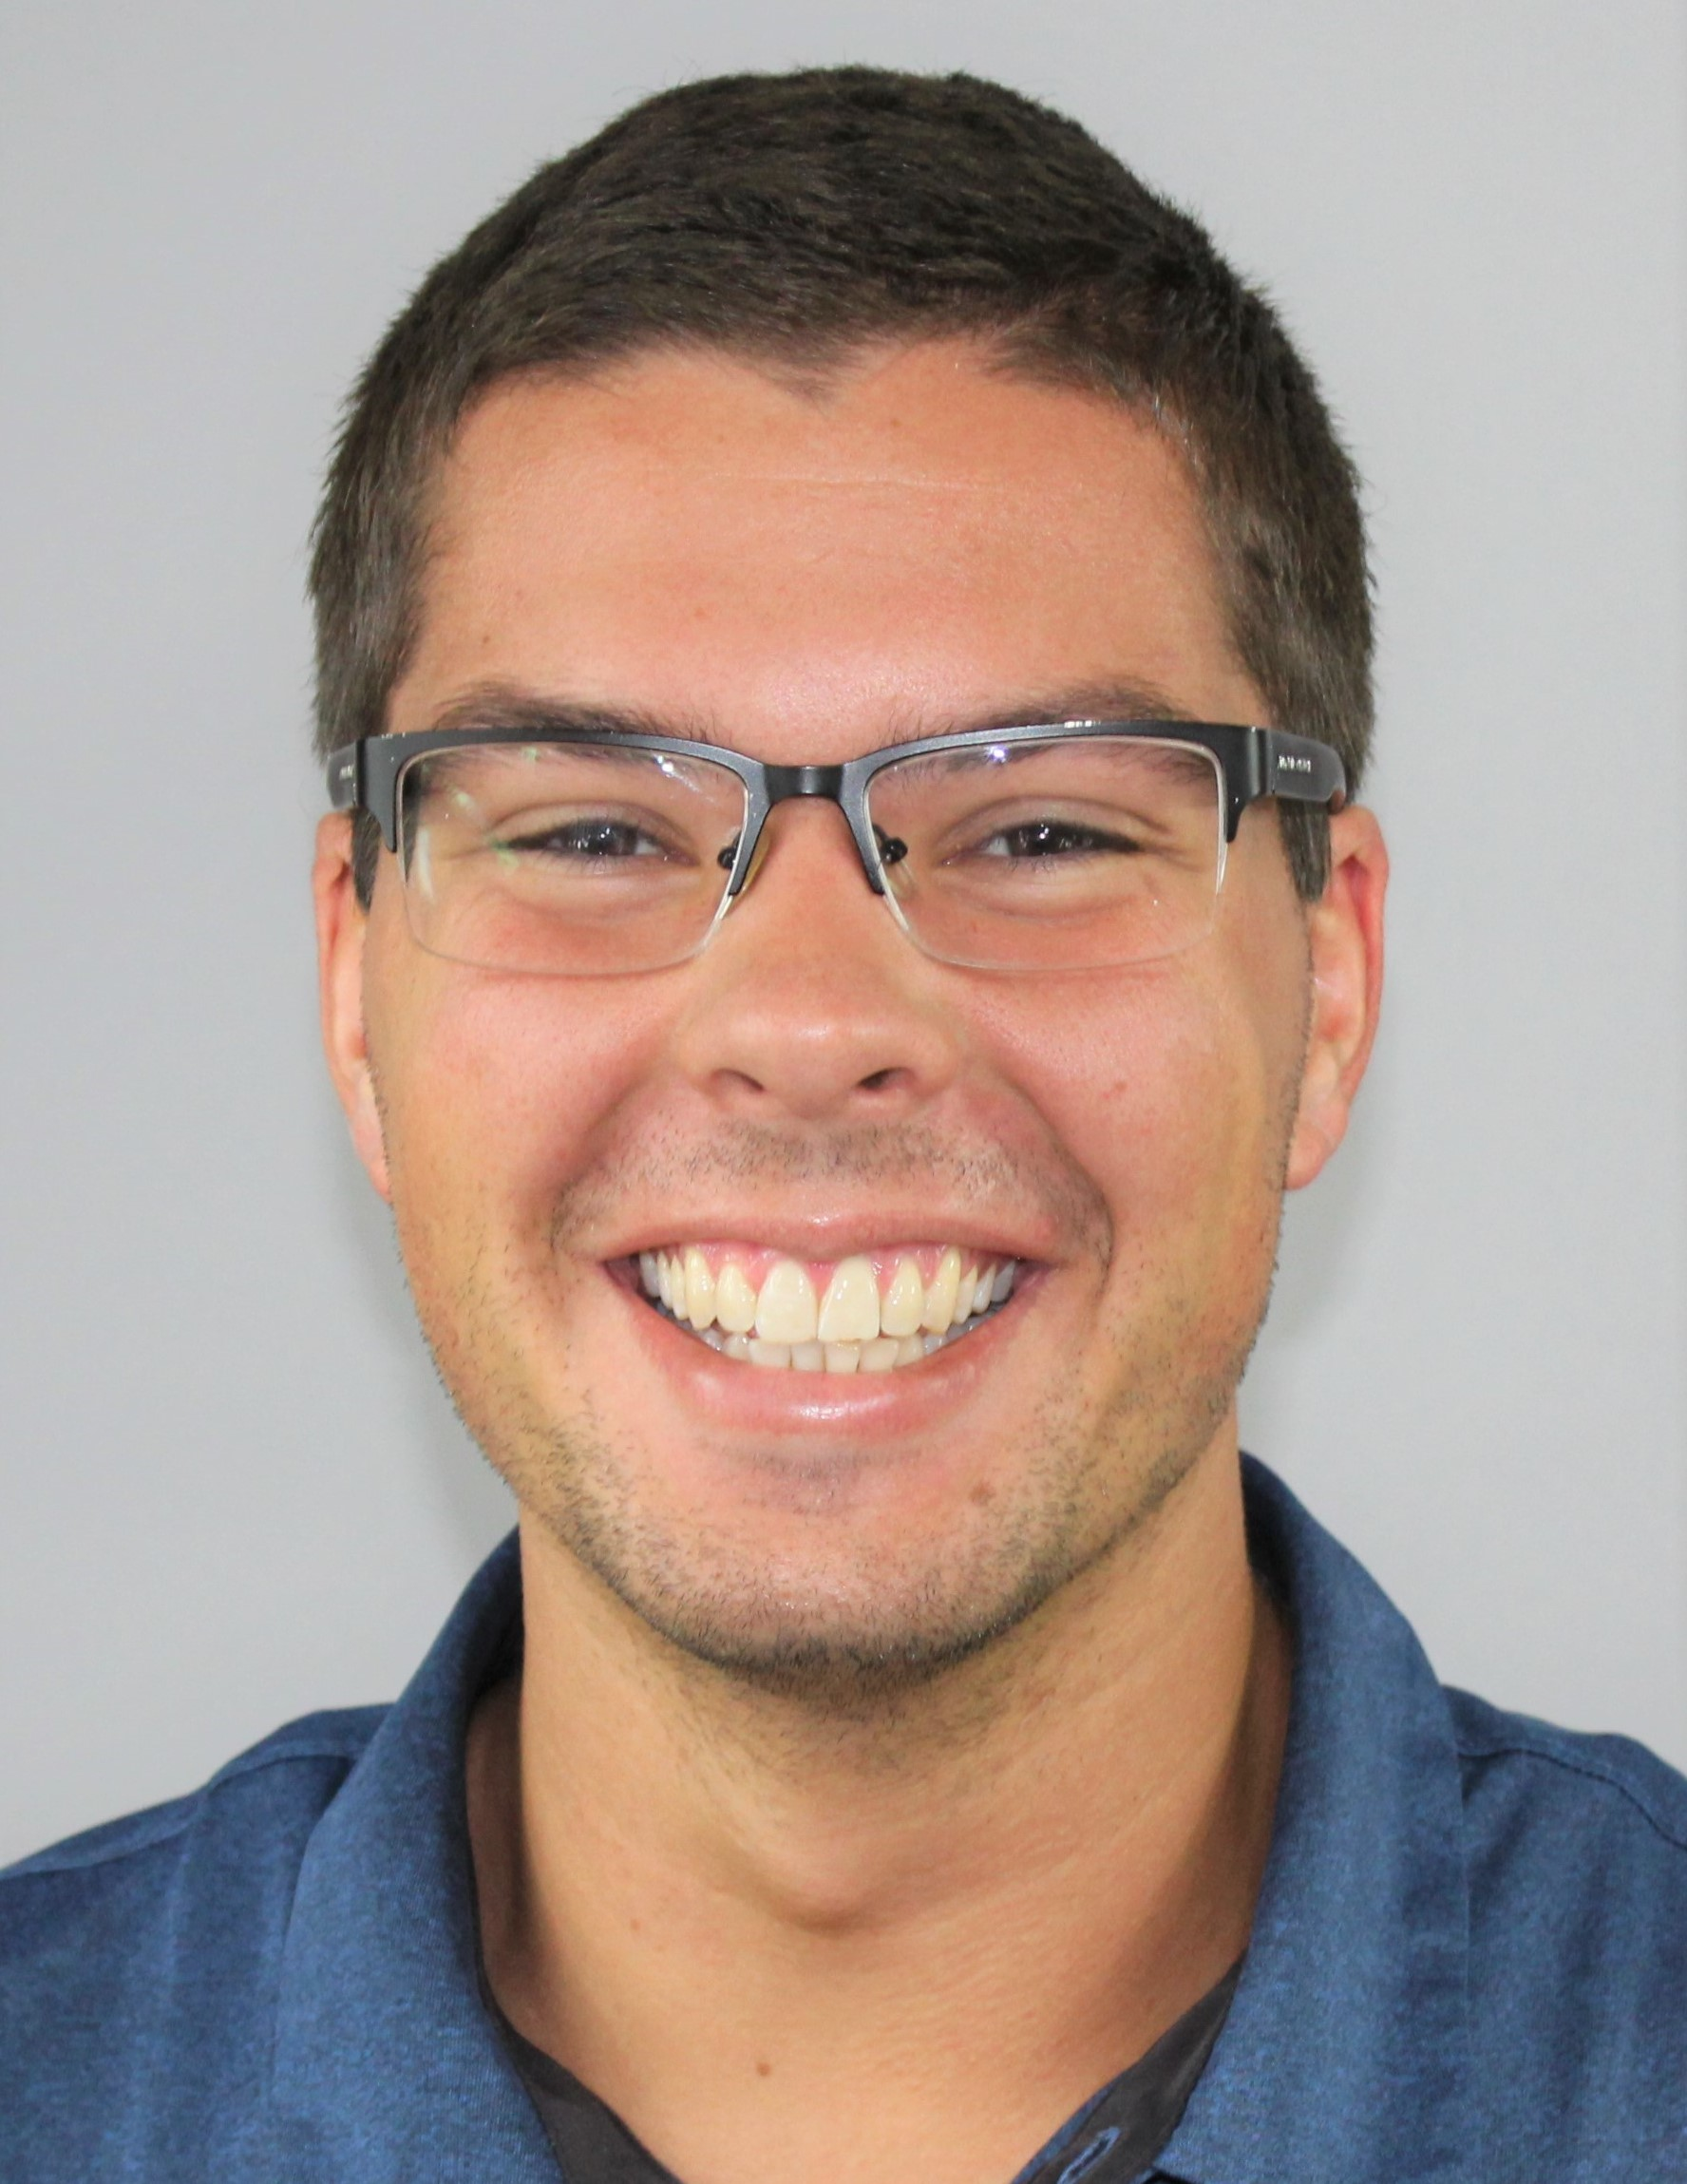 Jeremy Kurcina is a Technical Consultant at Stellar One Consulting, an SAP Partner specializing in SAP Business One ERP implementations and support.